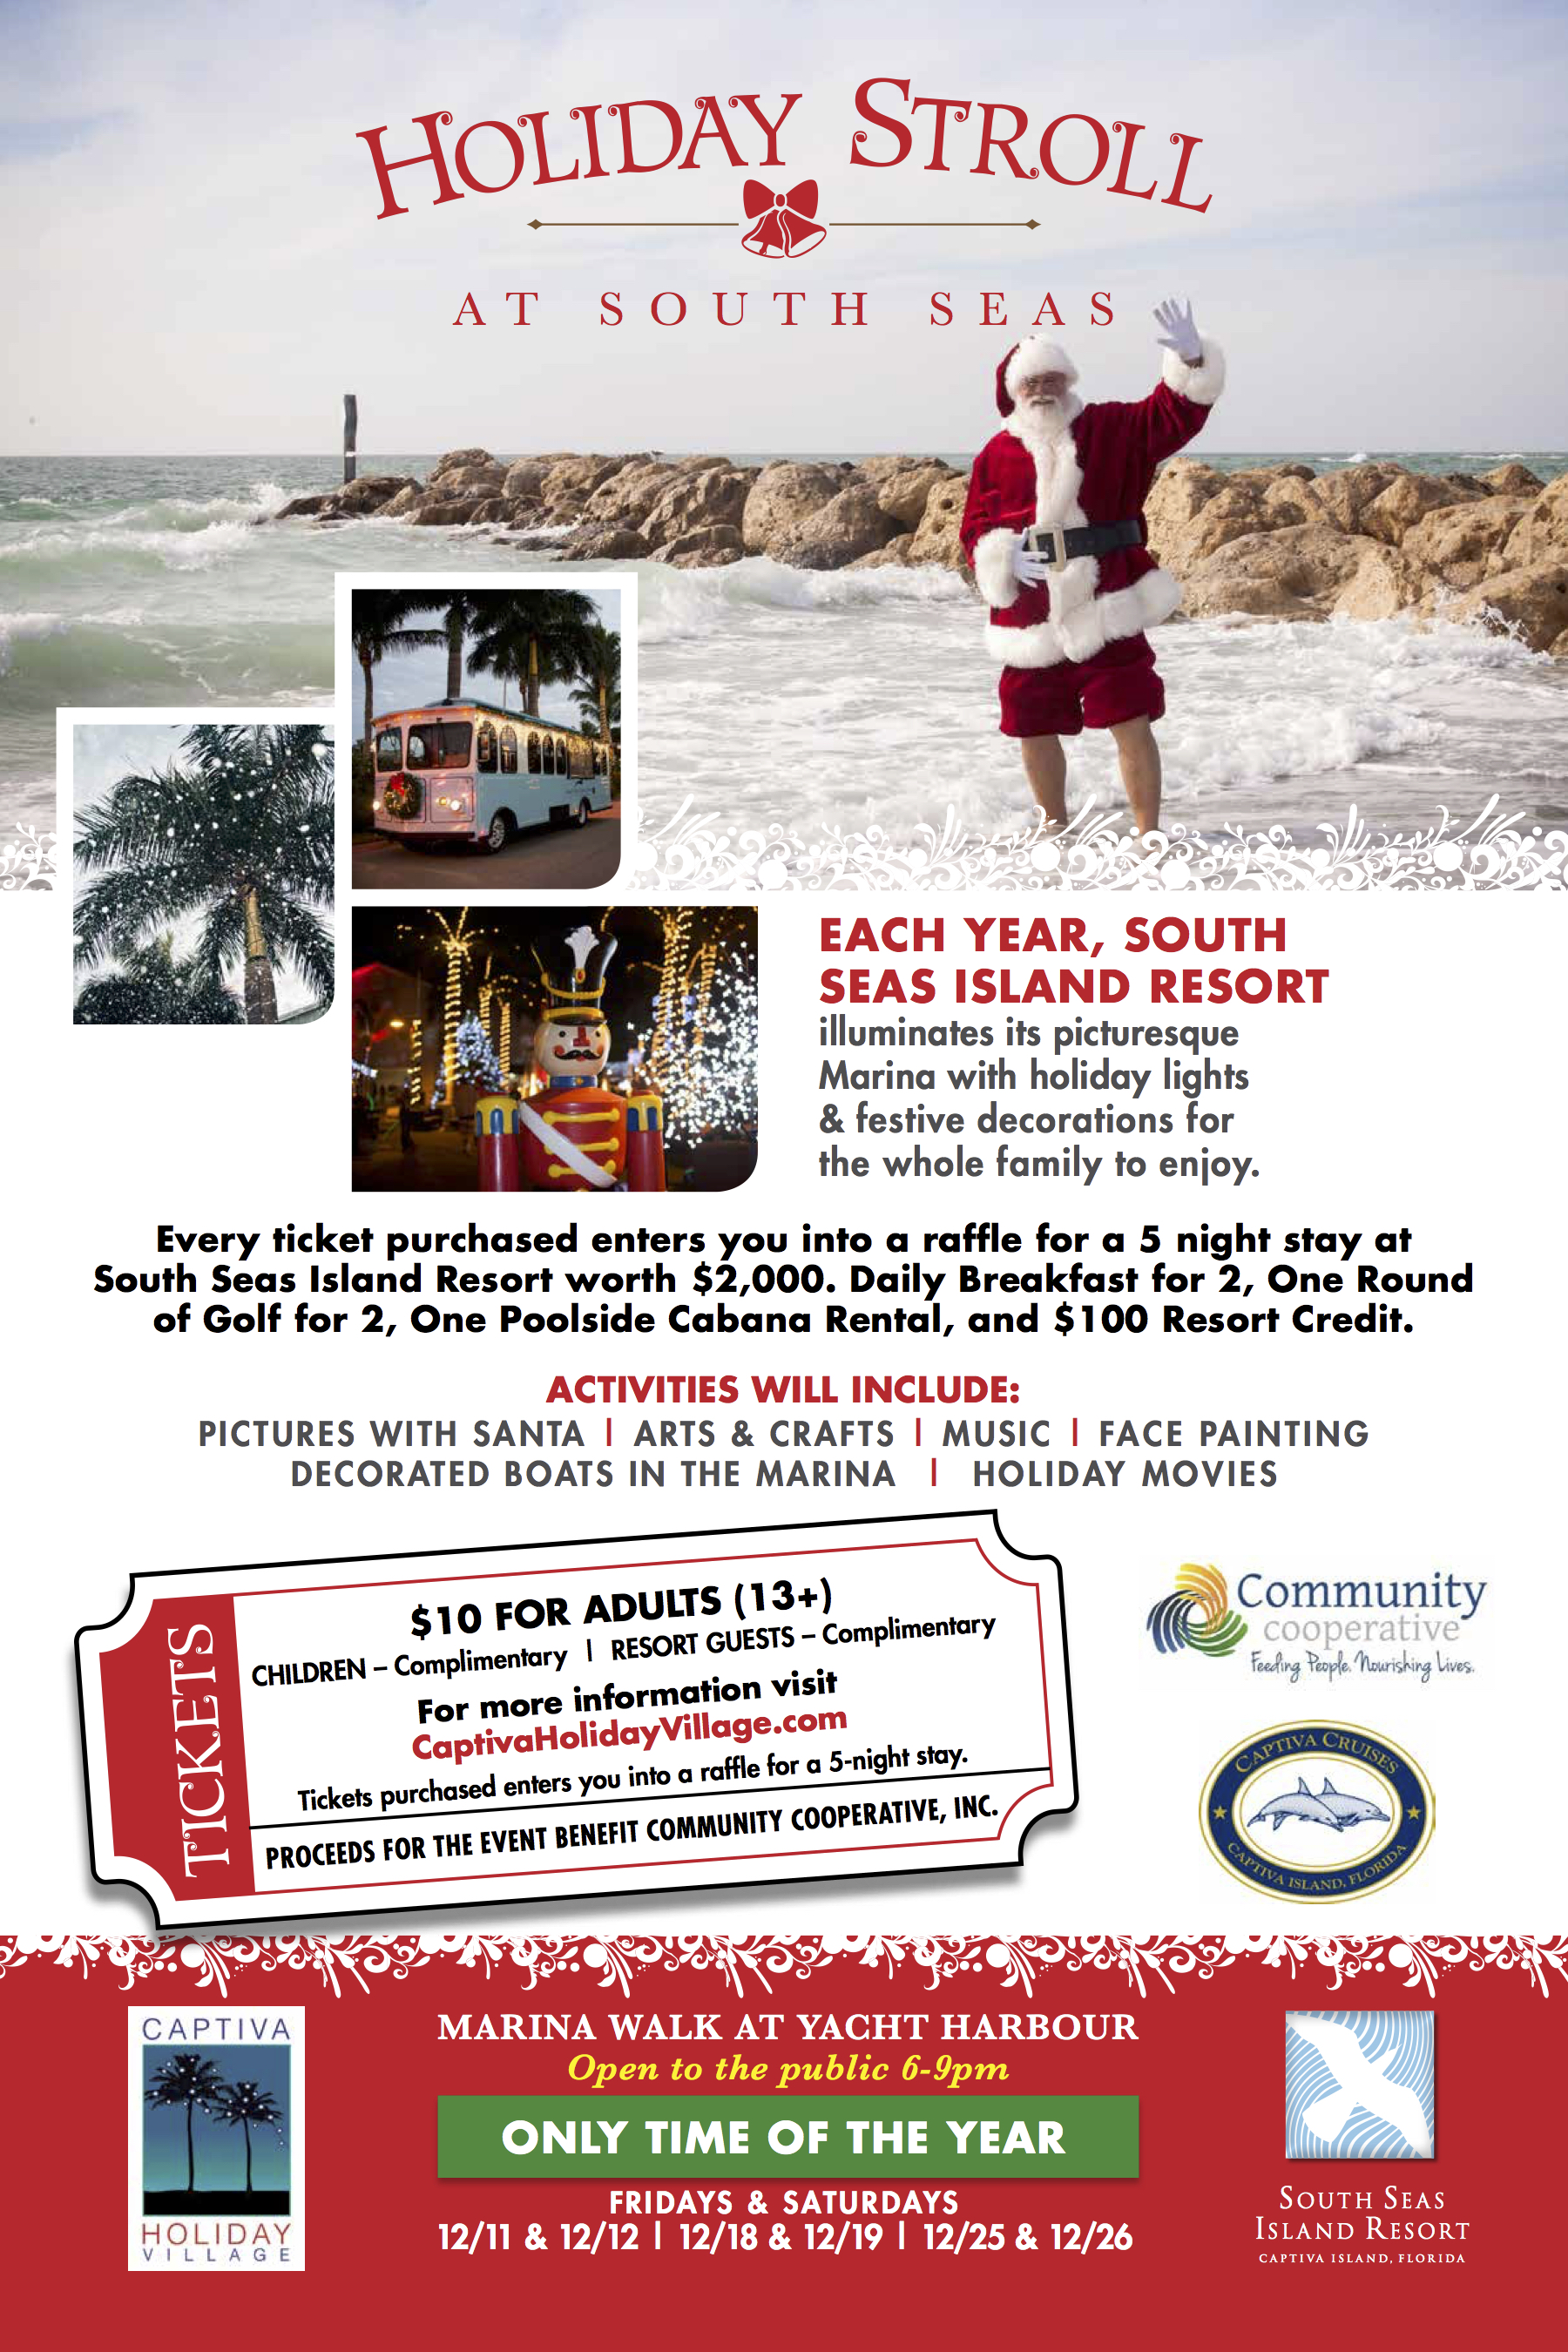 South Seas Holiday Stroll